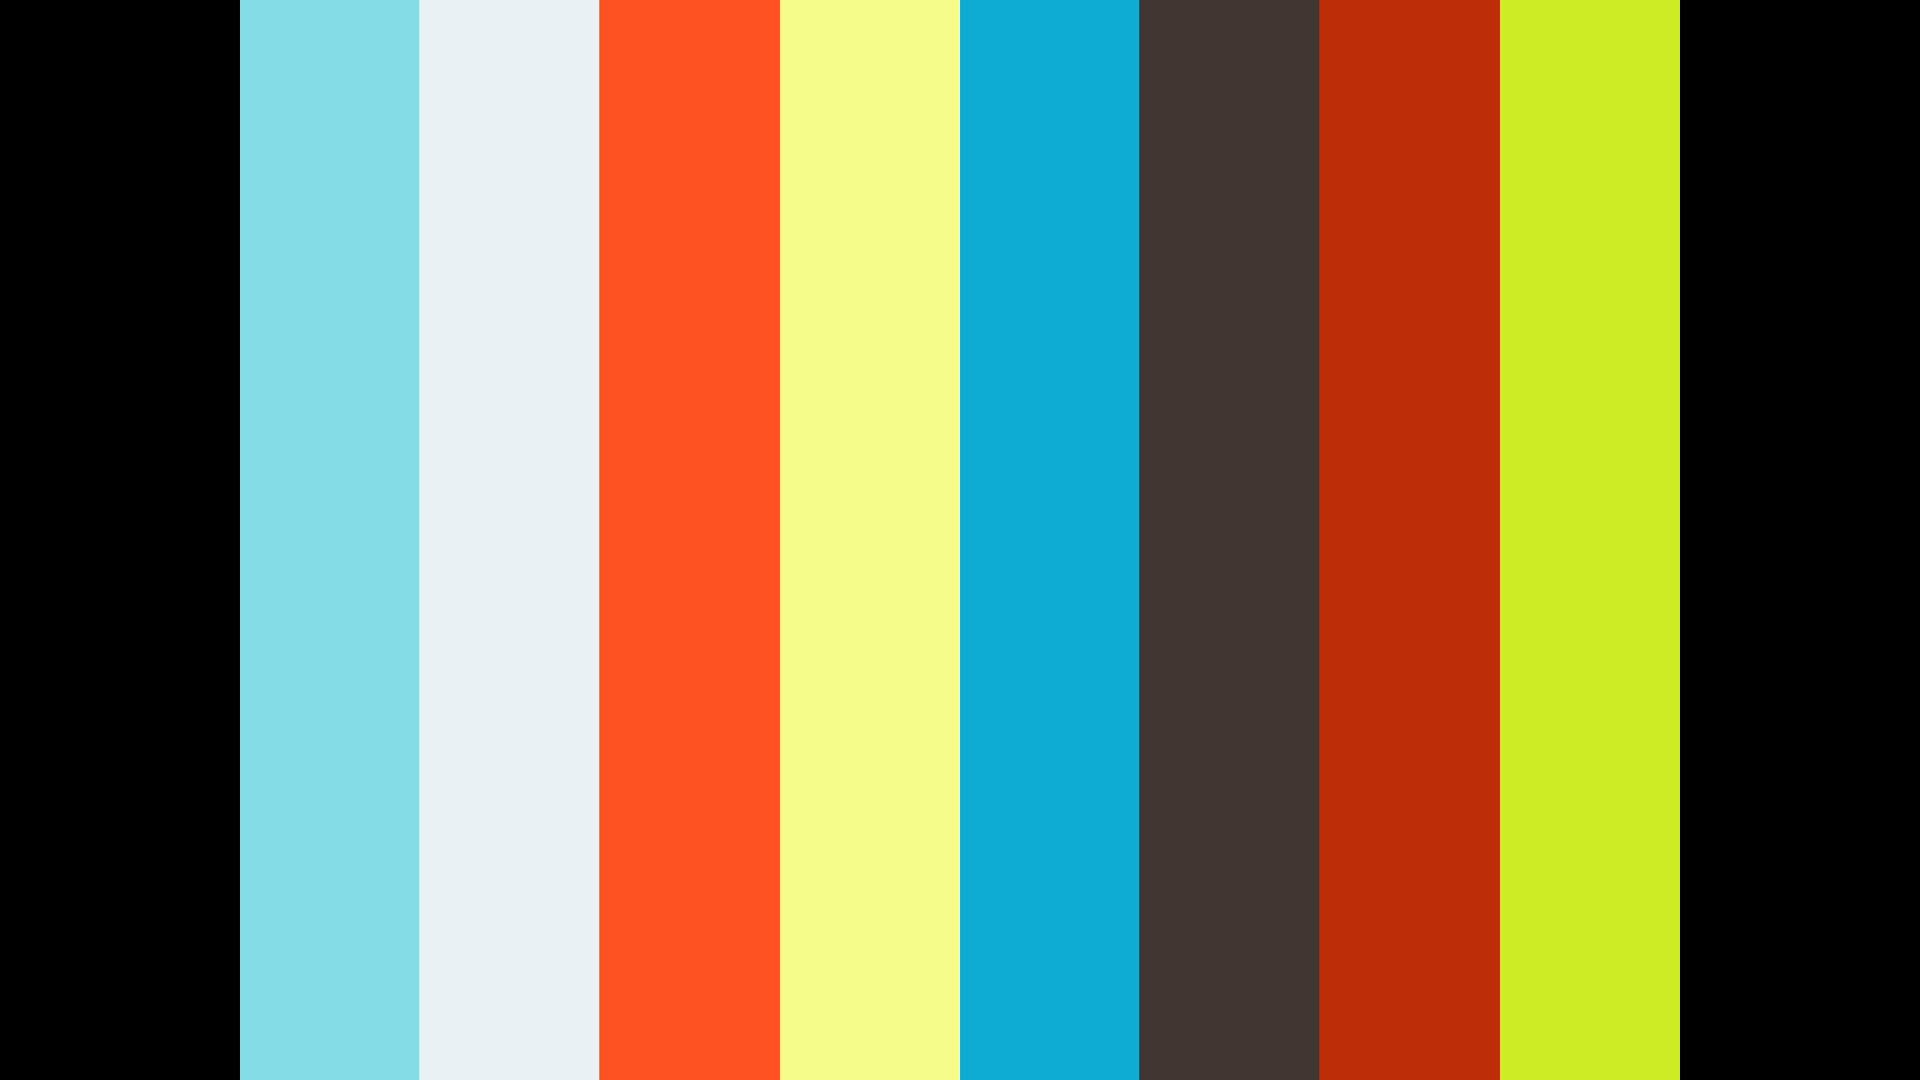 Ethiopianism.tv  አርበኛ-ፋኖ  ሃገራዊ  ርዮተ-ኅሊና Arbegna  Fano Collective consciousness 5 June 2020-18